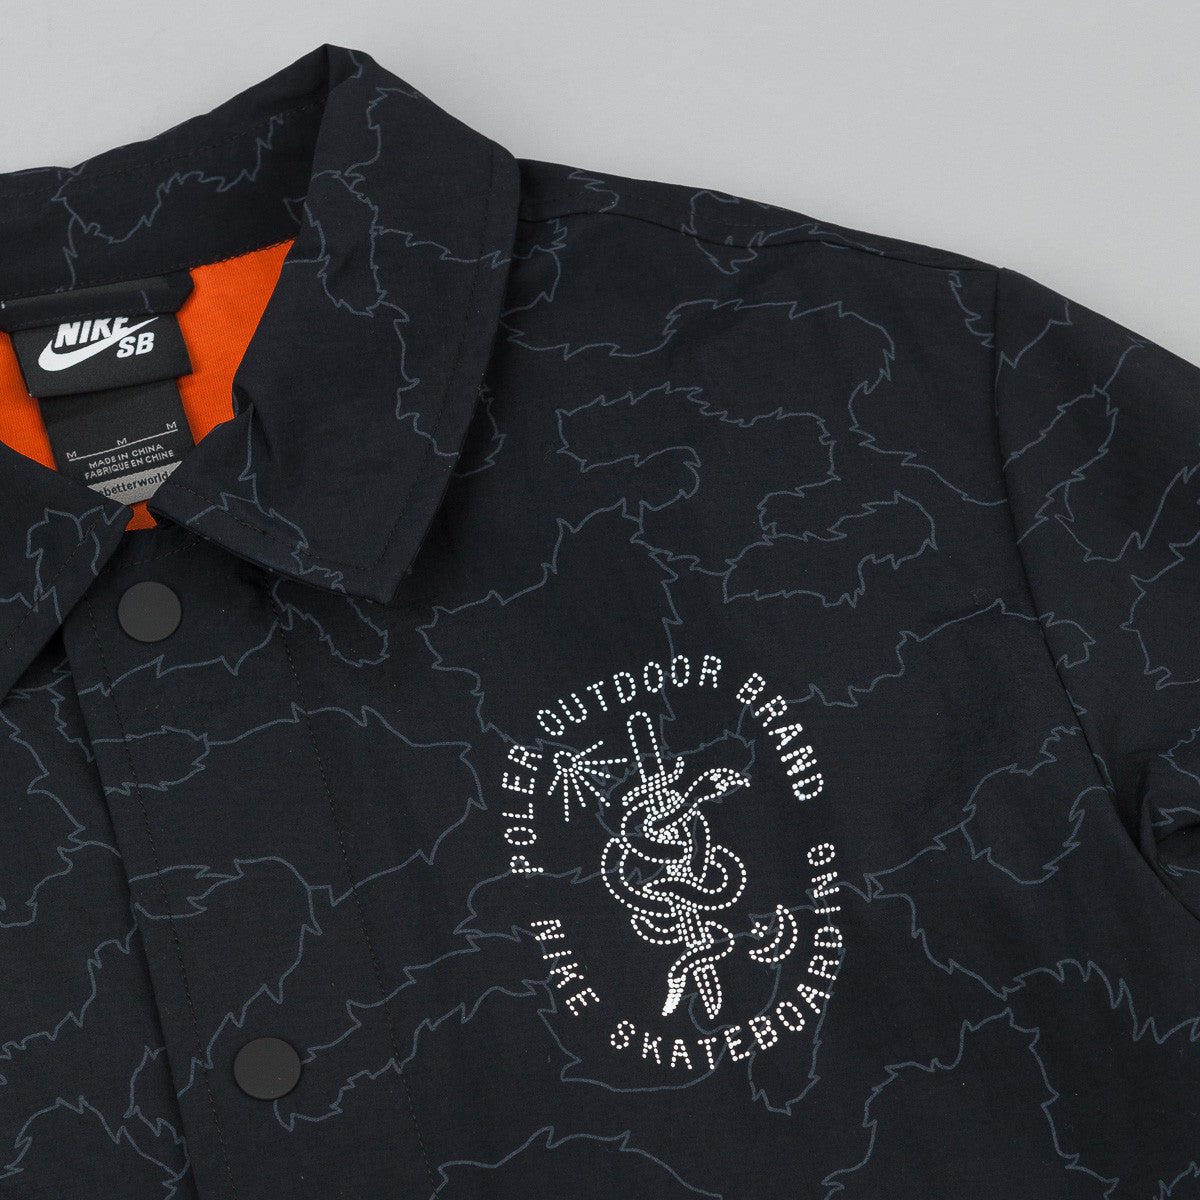 Nike SB x Poler Coaches Jacket - Black / Urban Orange / White